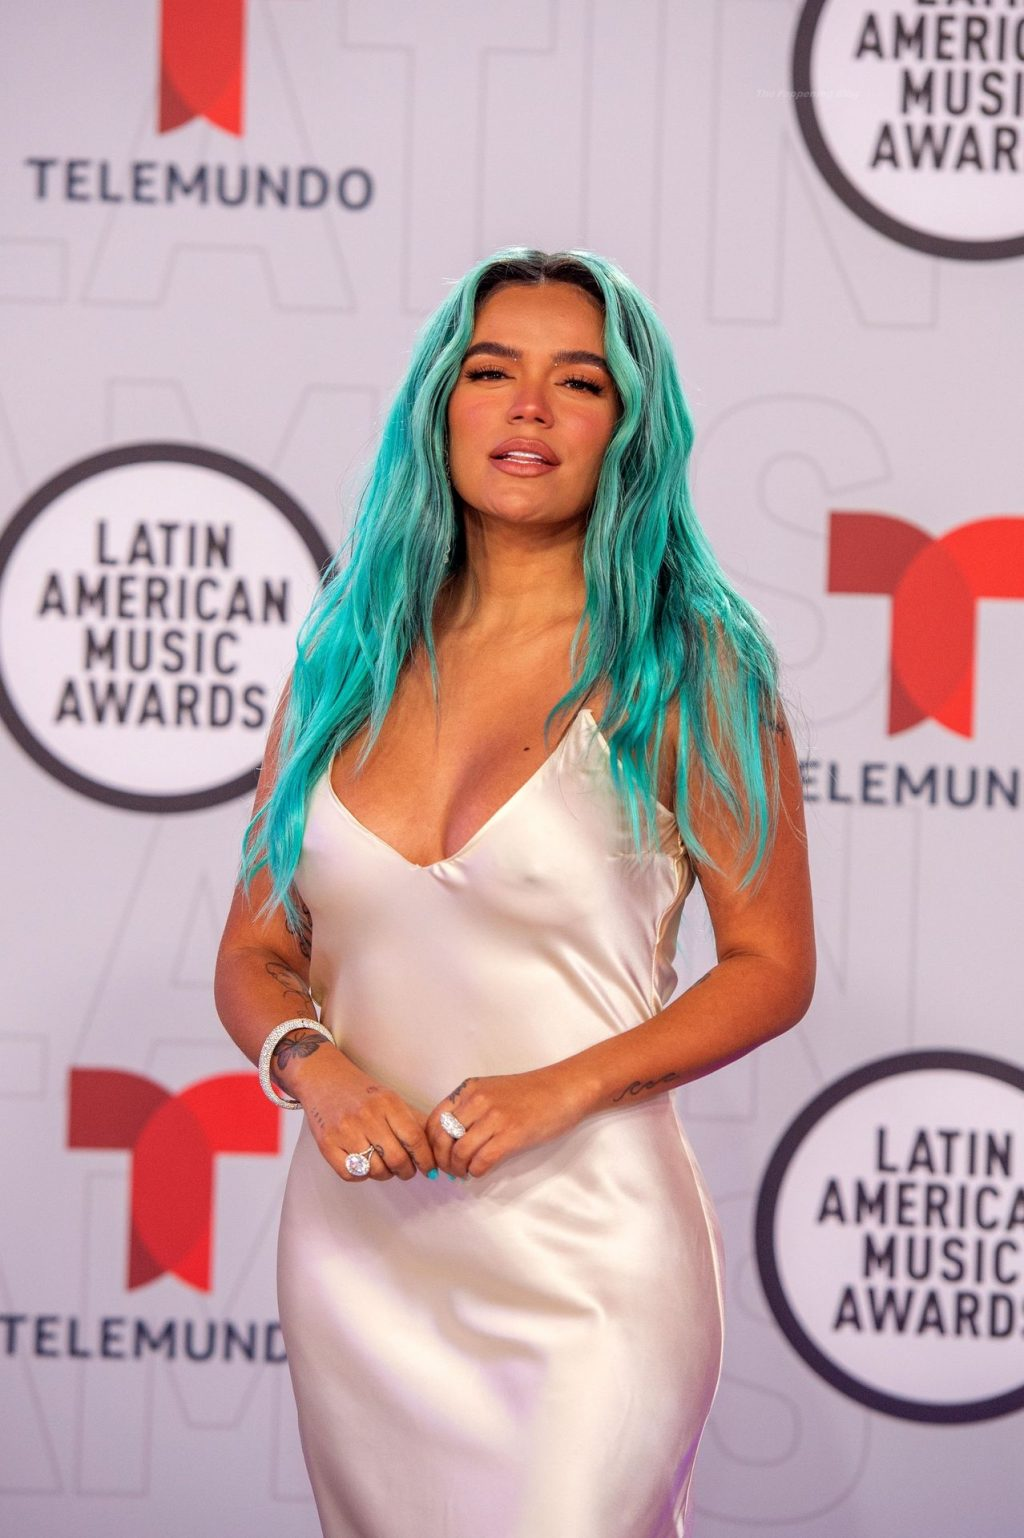 Braless Karol G Shows Her Pokies on the Red Carpet of the Sixth Annual Latin American Music Awards (5 Photos)